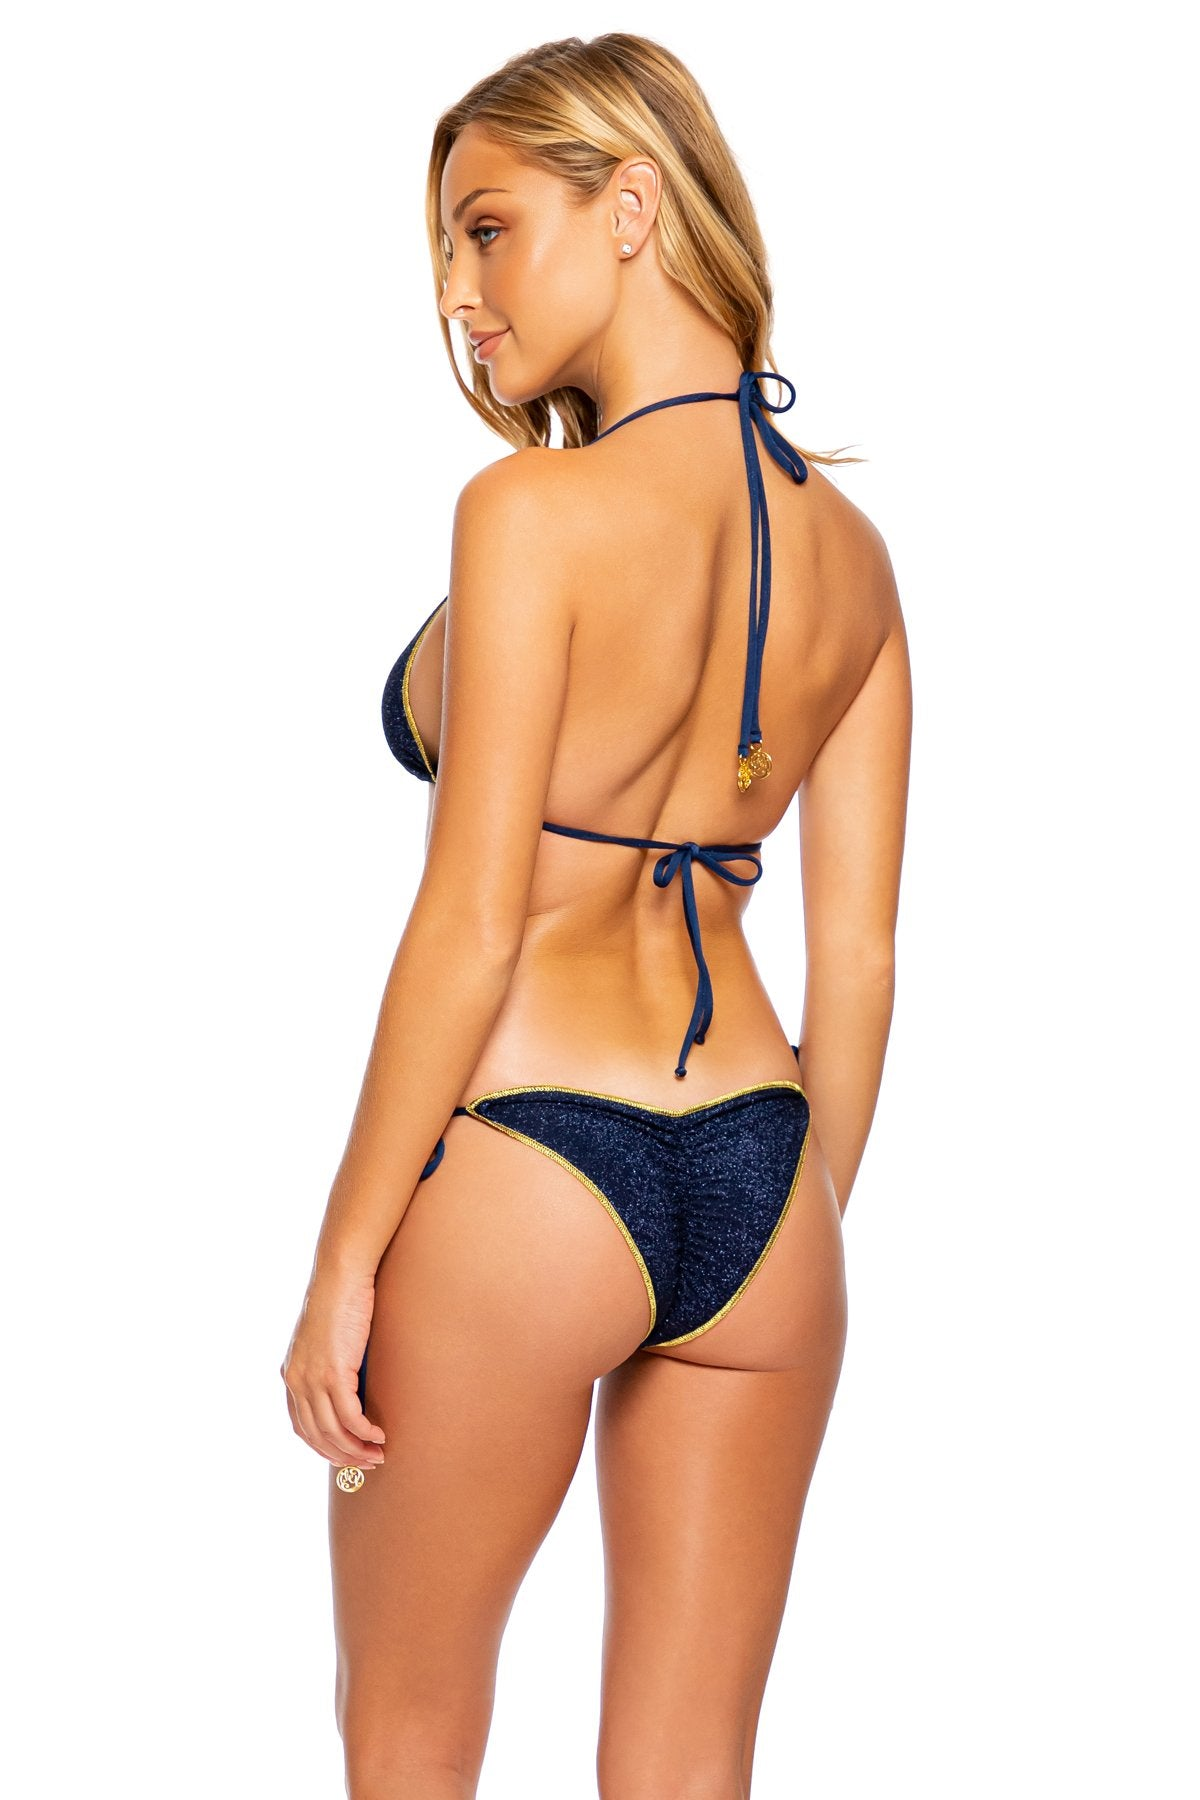 STARDUST - Triangle Top & Wavy Ruched Back Tie Side Bottom • Midnight Blue